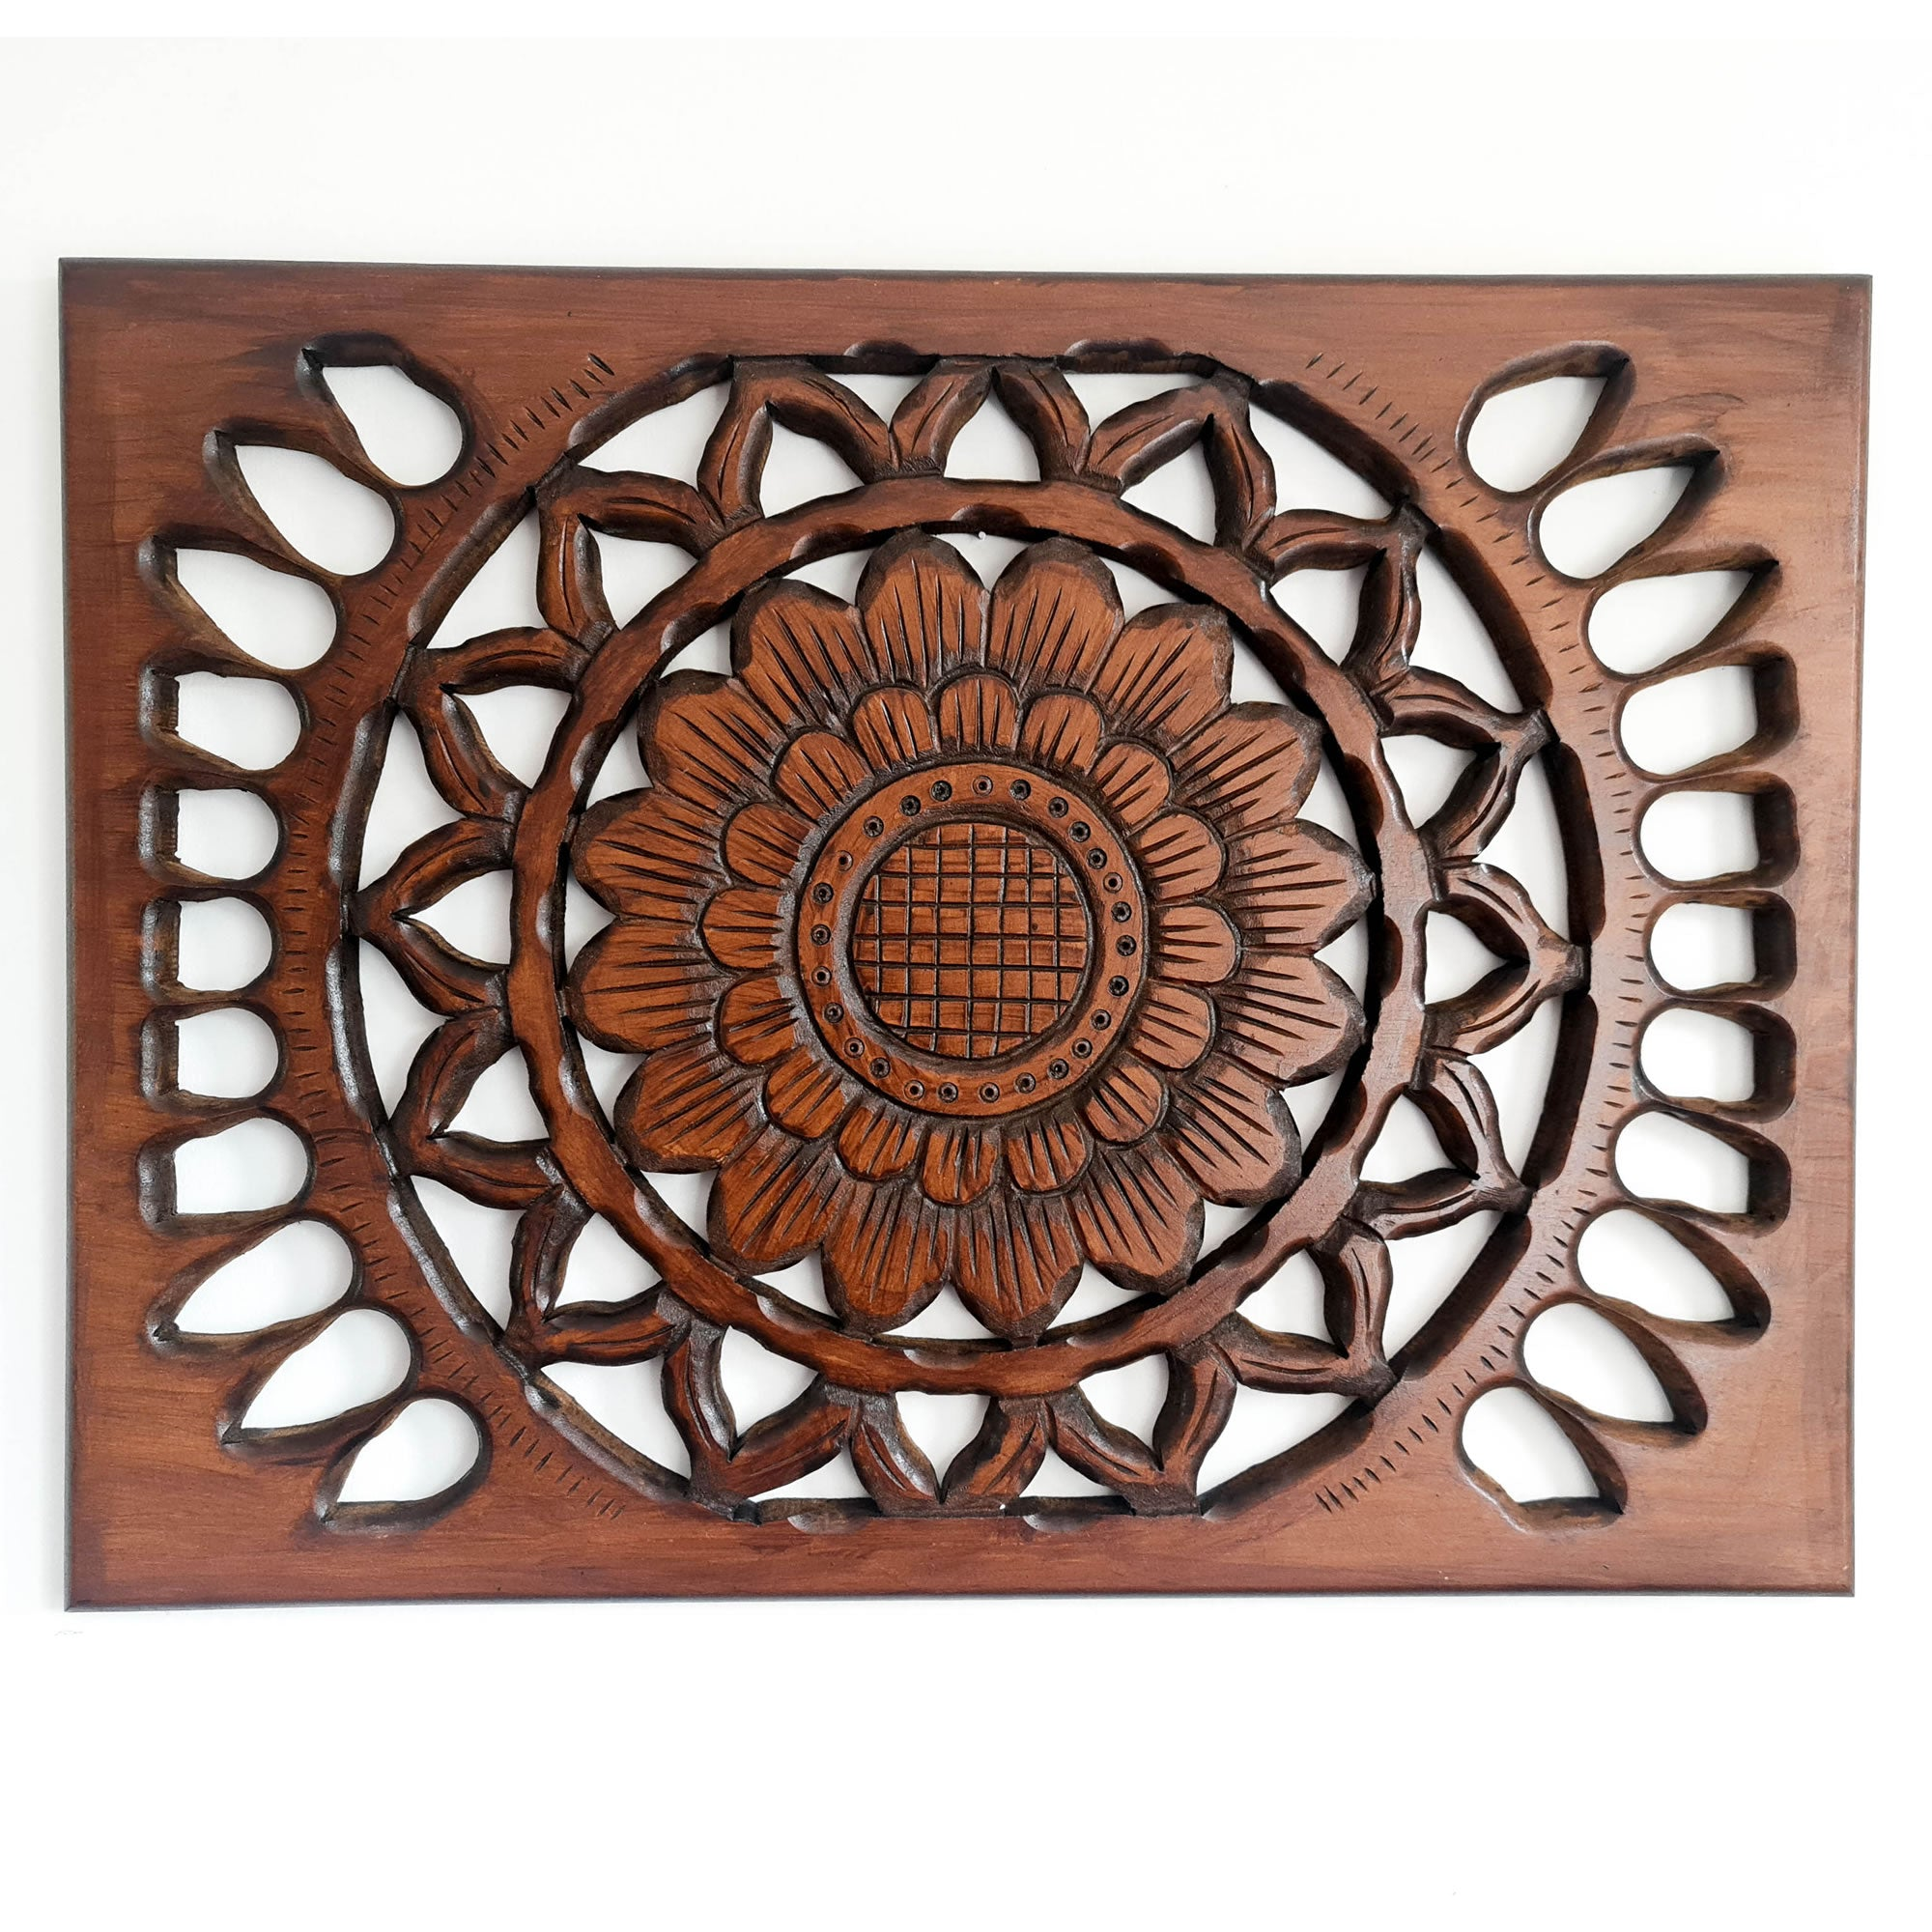 Handmade Carved Wooden Decorative Wall Art Lotus Mandala